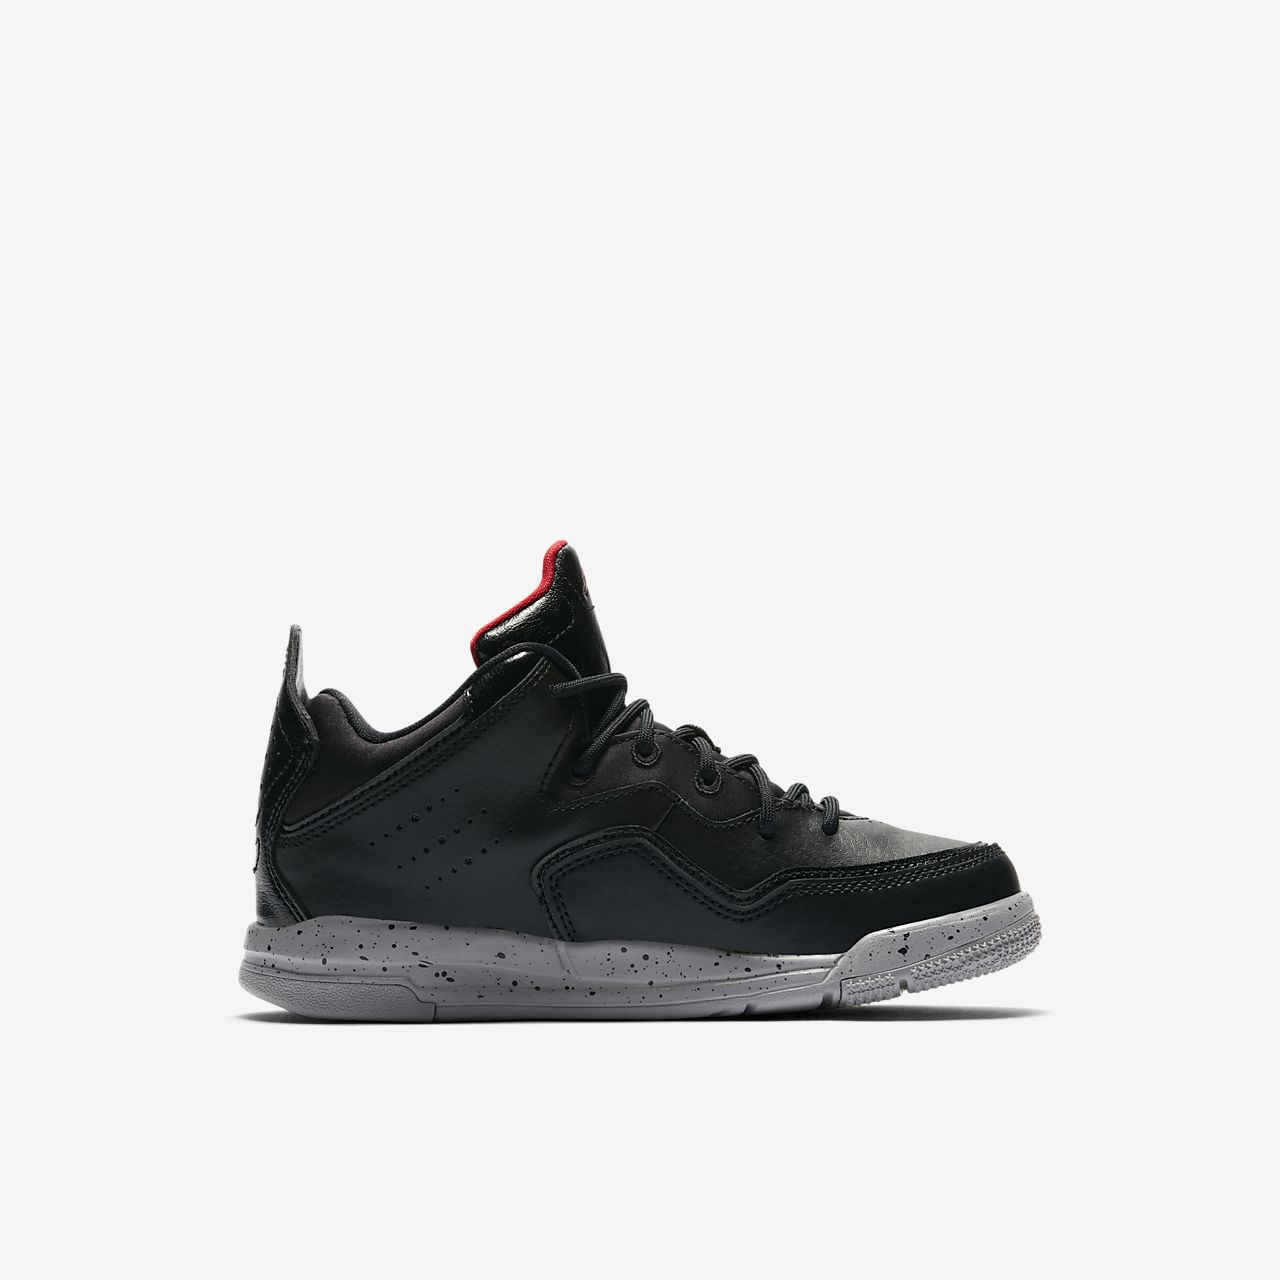 08bfd2e3ee2 Jordan Courtside 23 Younger Kids  Shoe. Nike.com AE